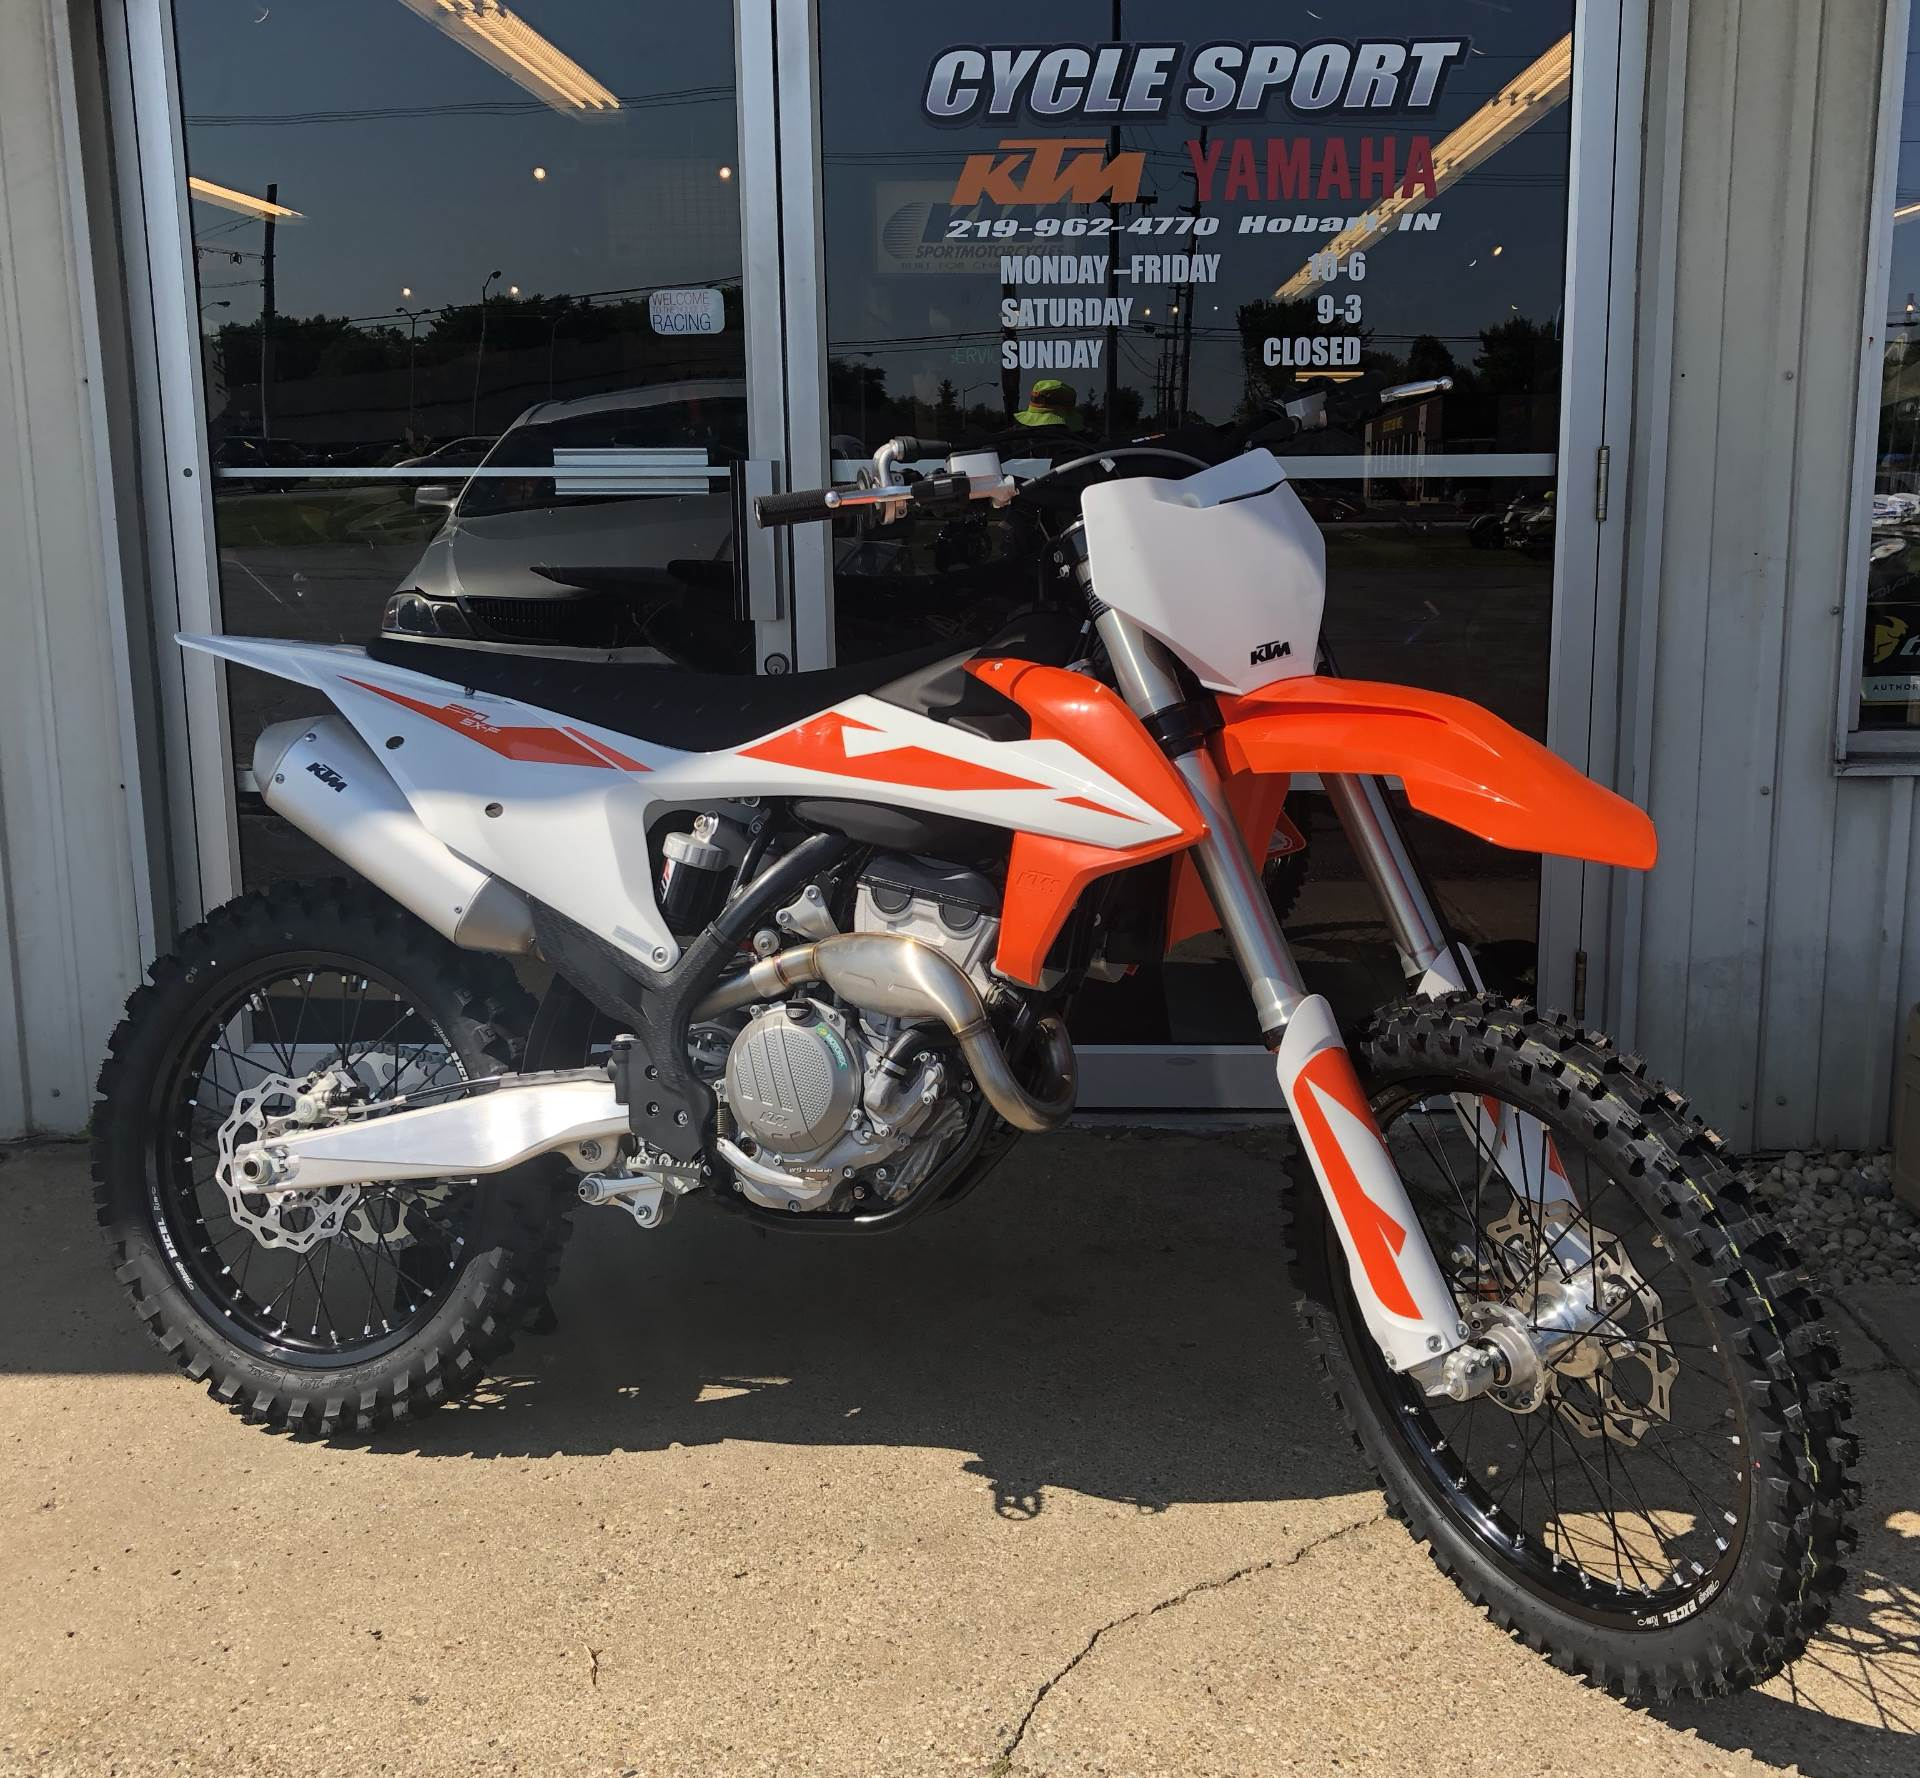 new 2019 ktm 250 sx f motorcycles in hobart in stock. Black Bedroom Furniture Sets. Home Design Ideas